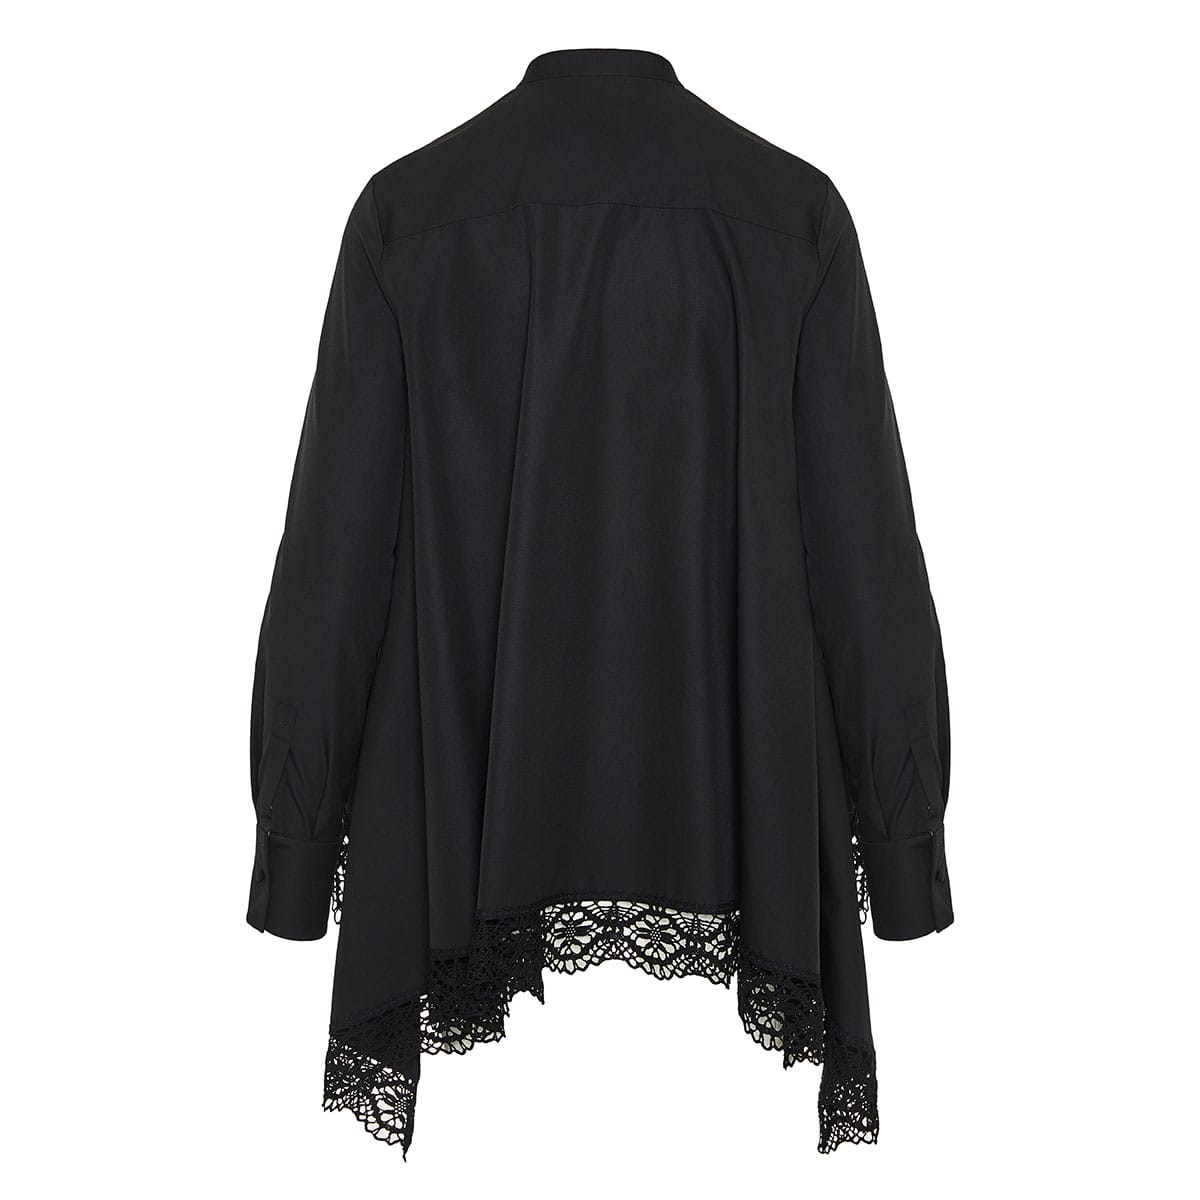 Lace-trimmed asymmetric draped shirt